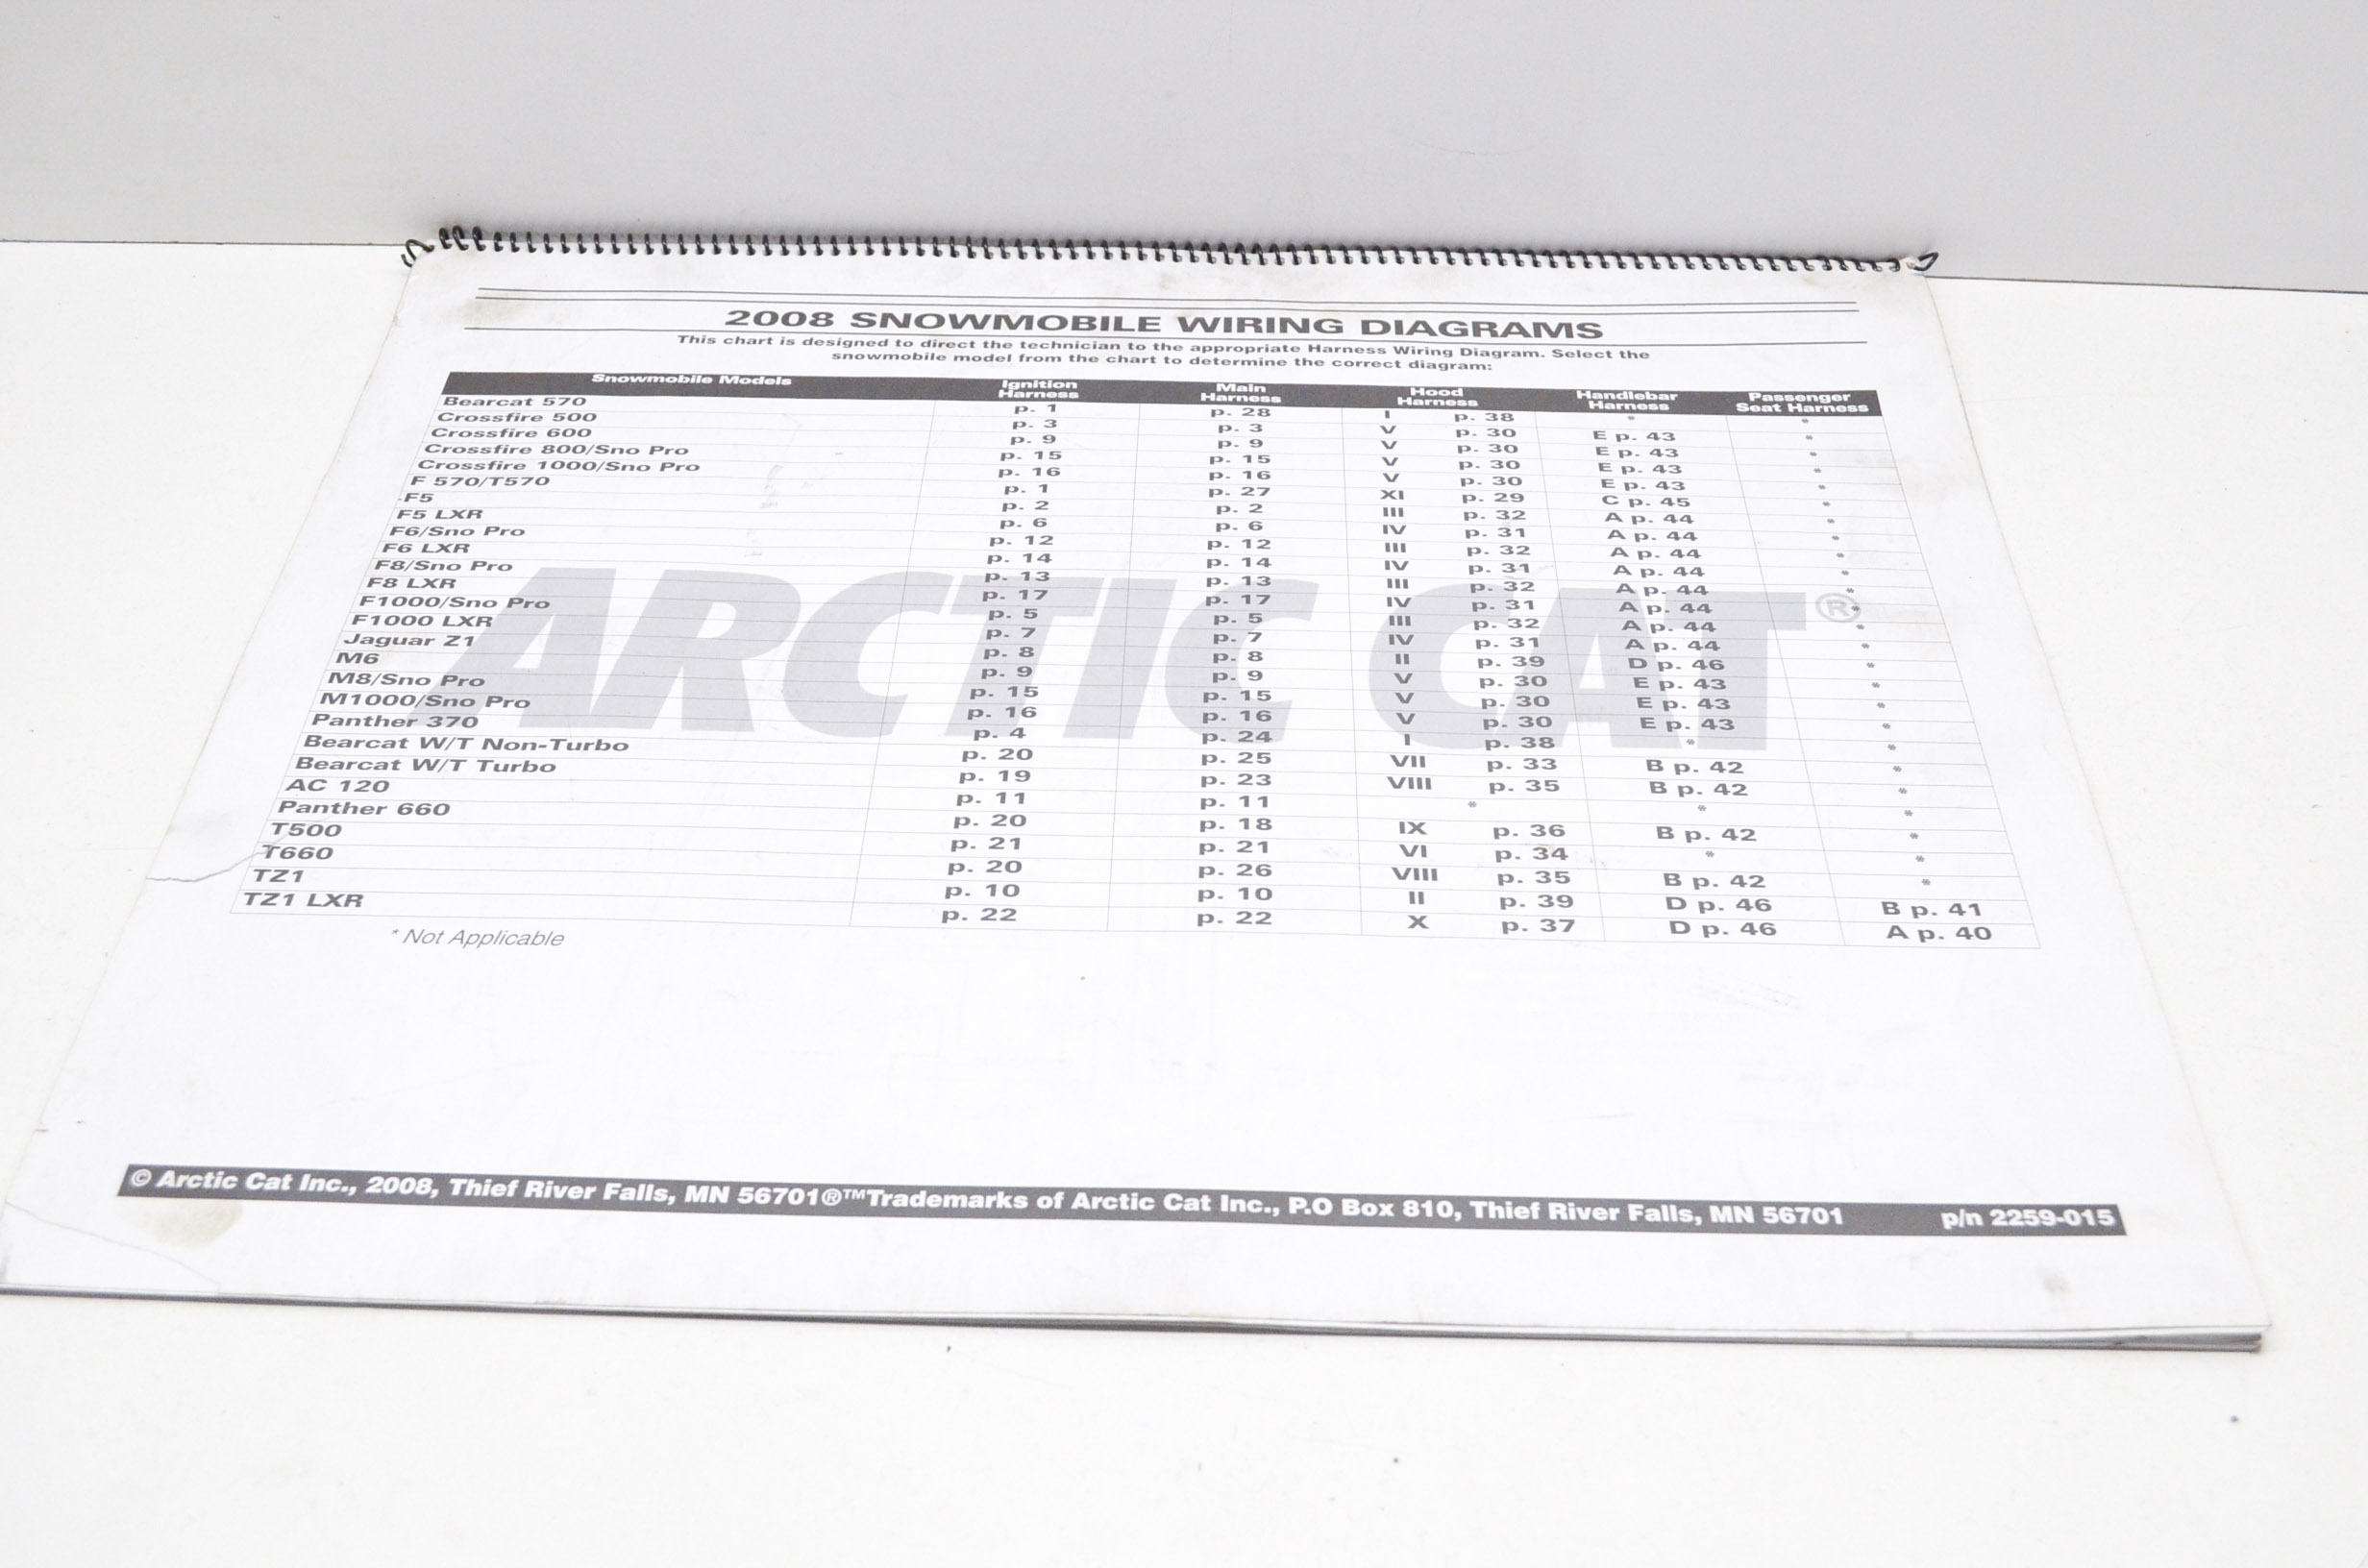 small resolution of arctic cat 2259 015 2008 snowmobile wiring diagrams qty 1 walmart comarctic cat snowmobile wiring diagrams